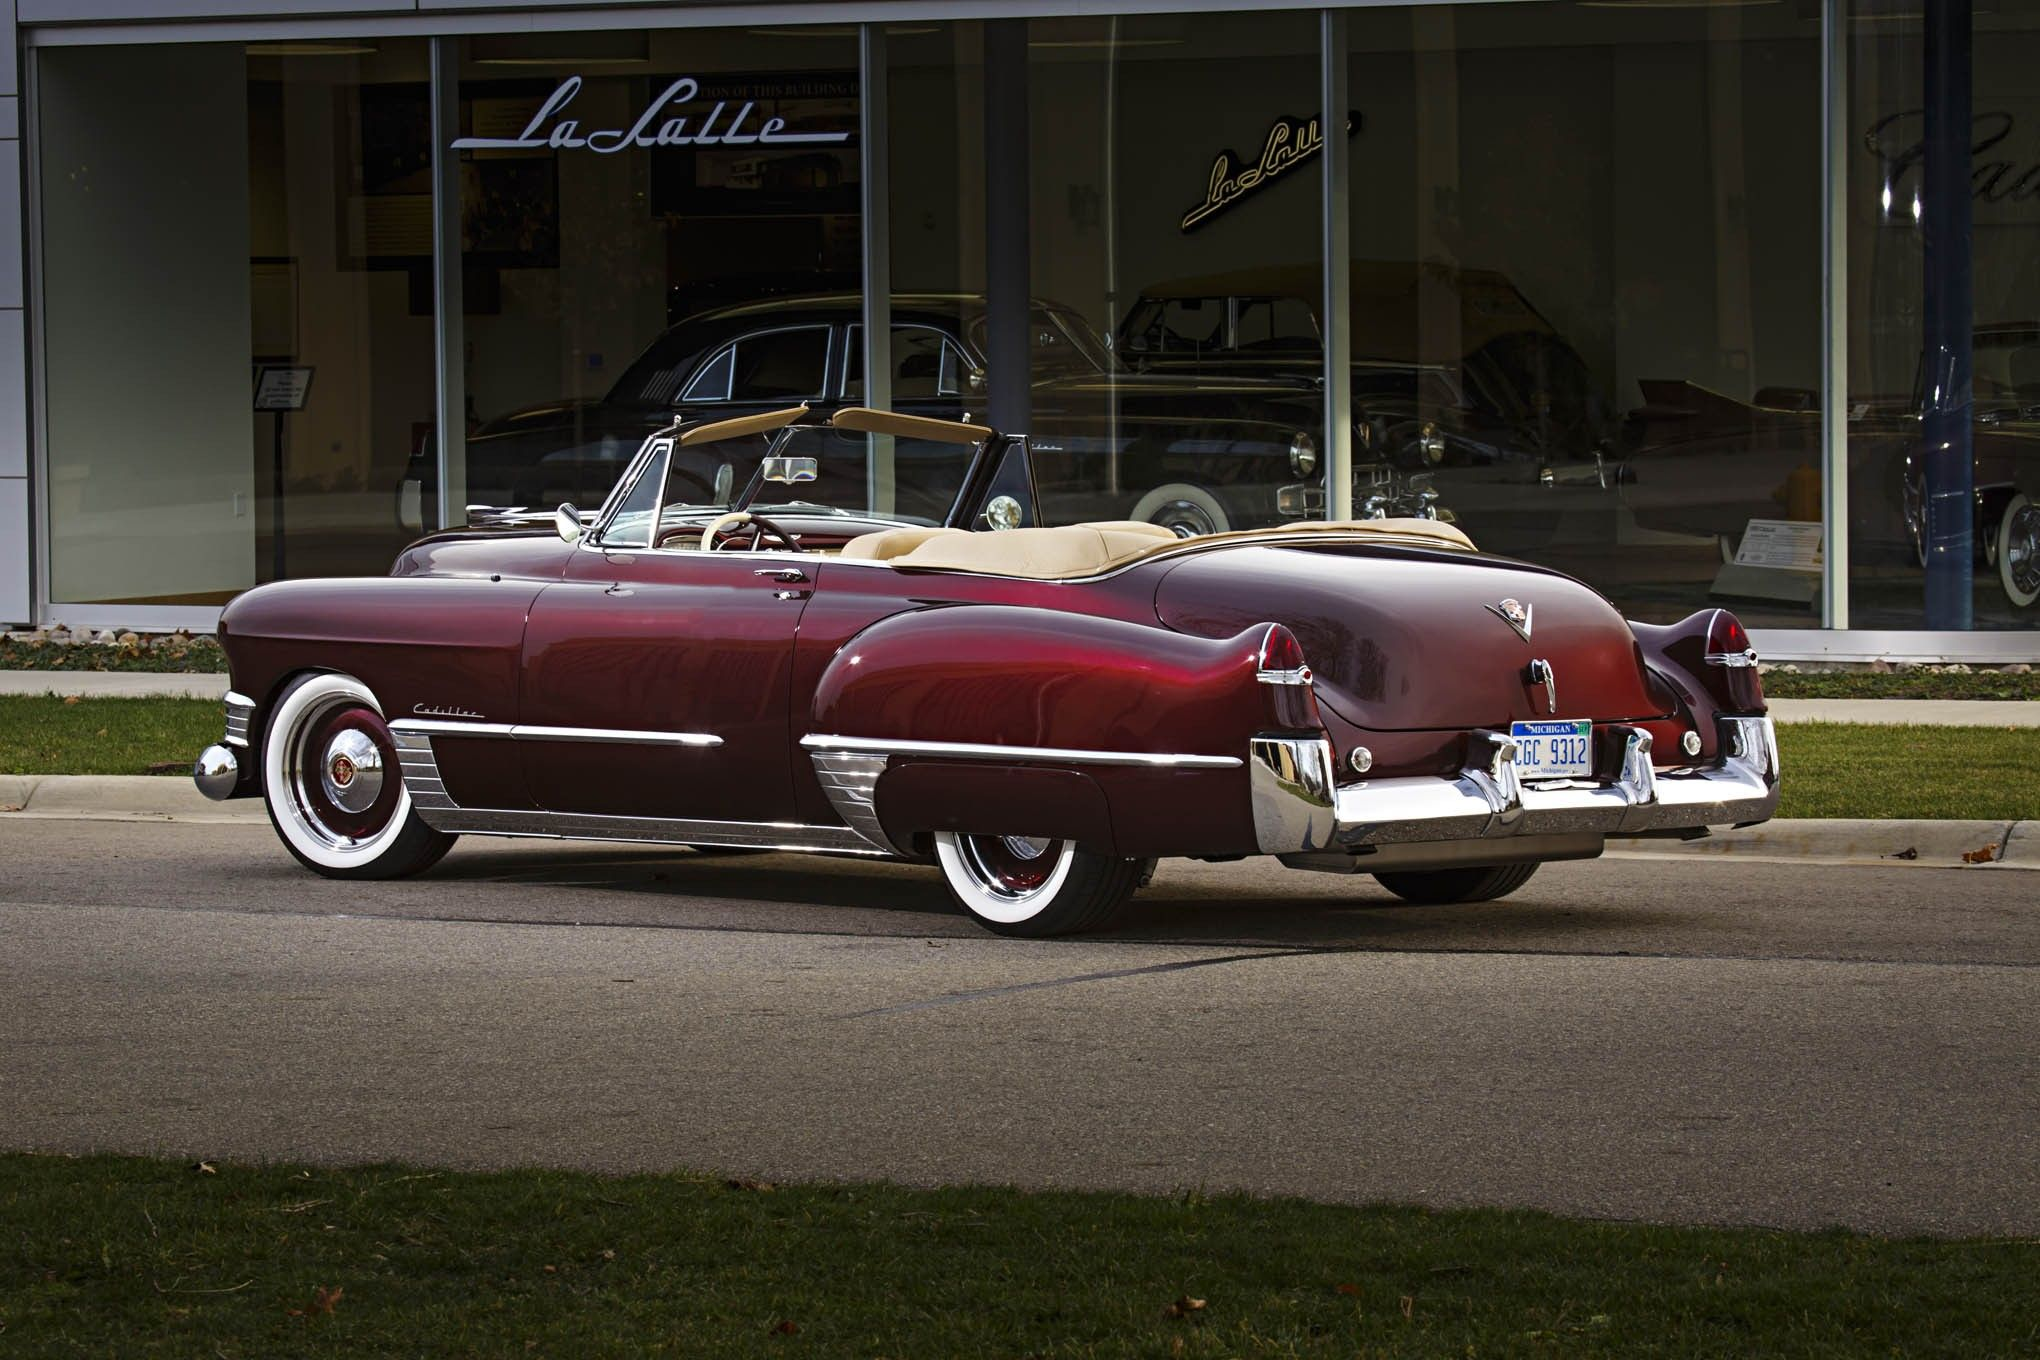 1949 cadillac coupe deville clipart jpg download 1949 CADILLAC CONVERTIBLE   VINTAGE CARS   American classic cars ... jpg download